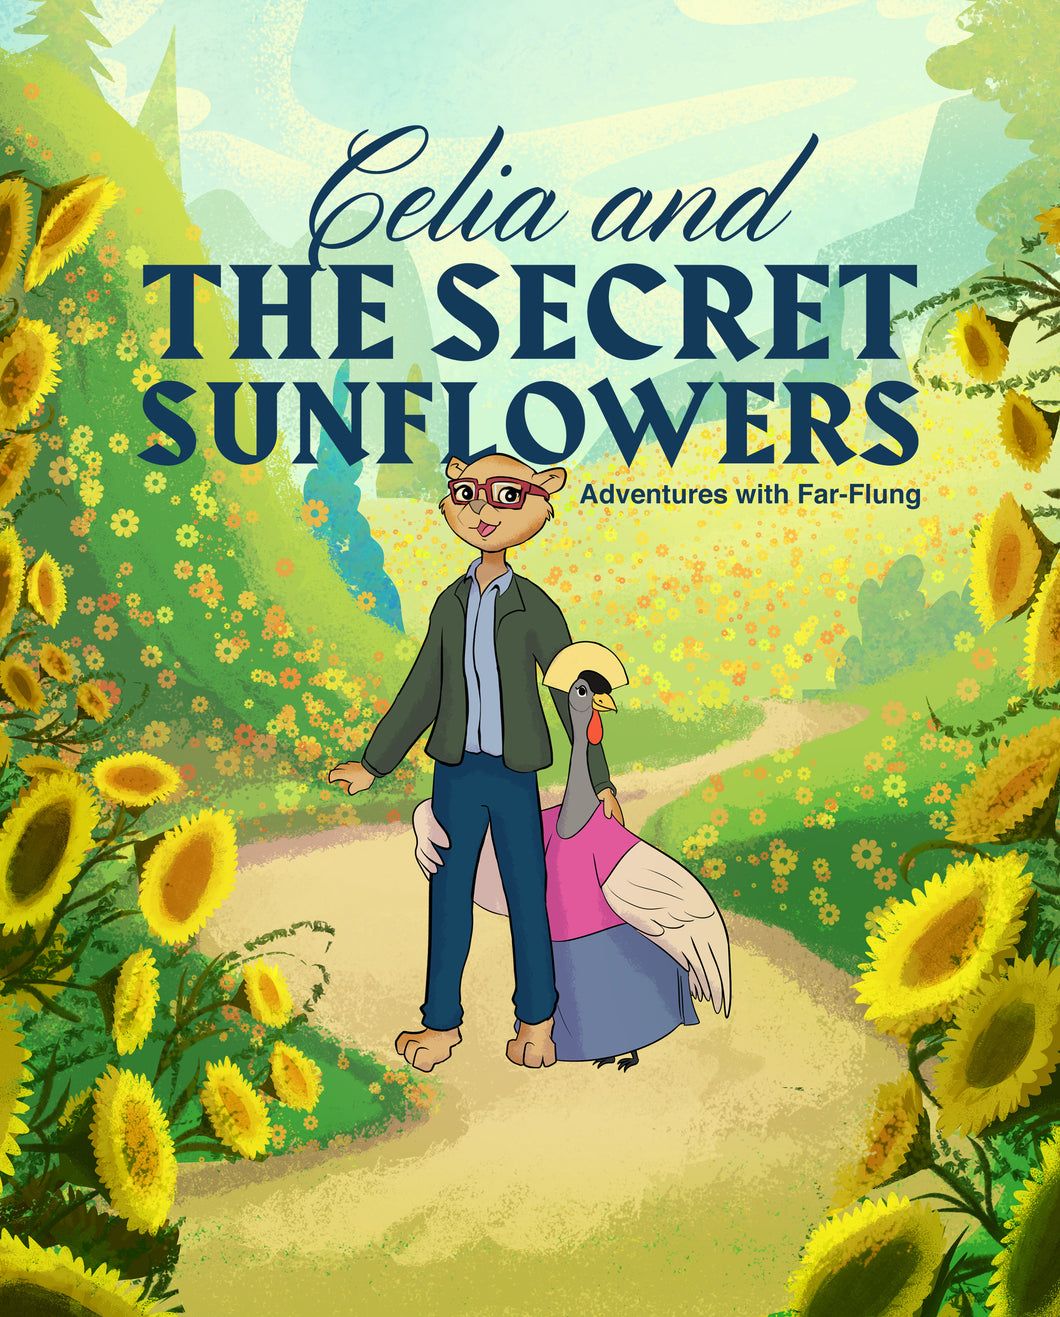 Adventures with Far-Flung: Celia and The Secret Sunflowers